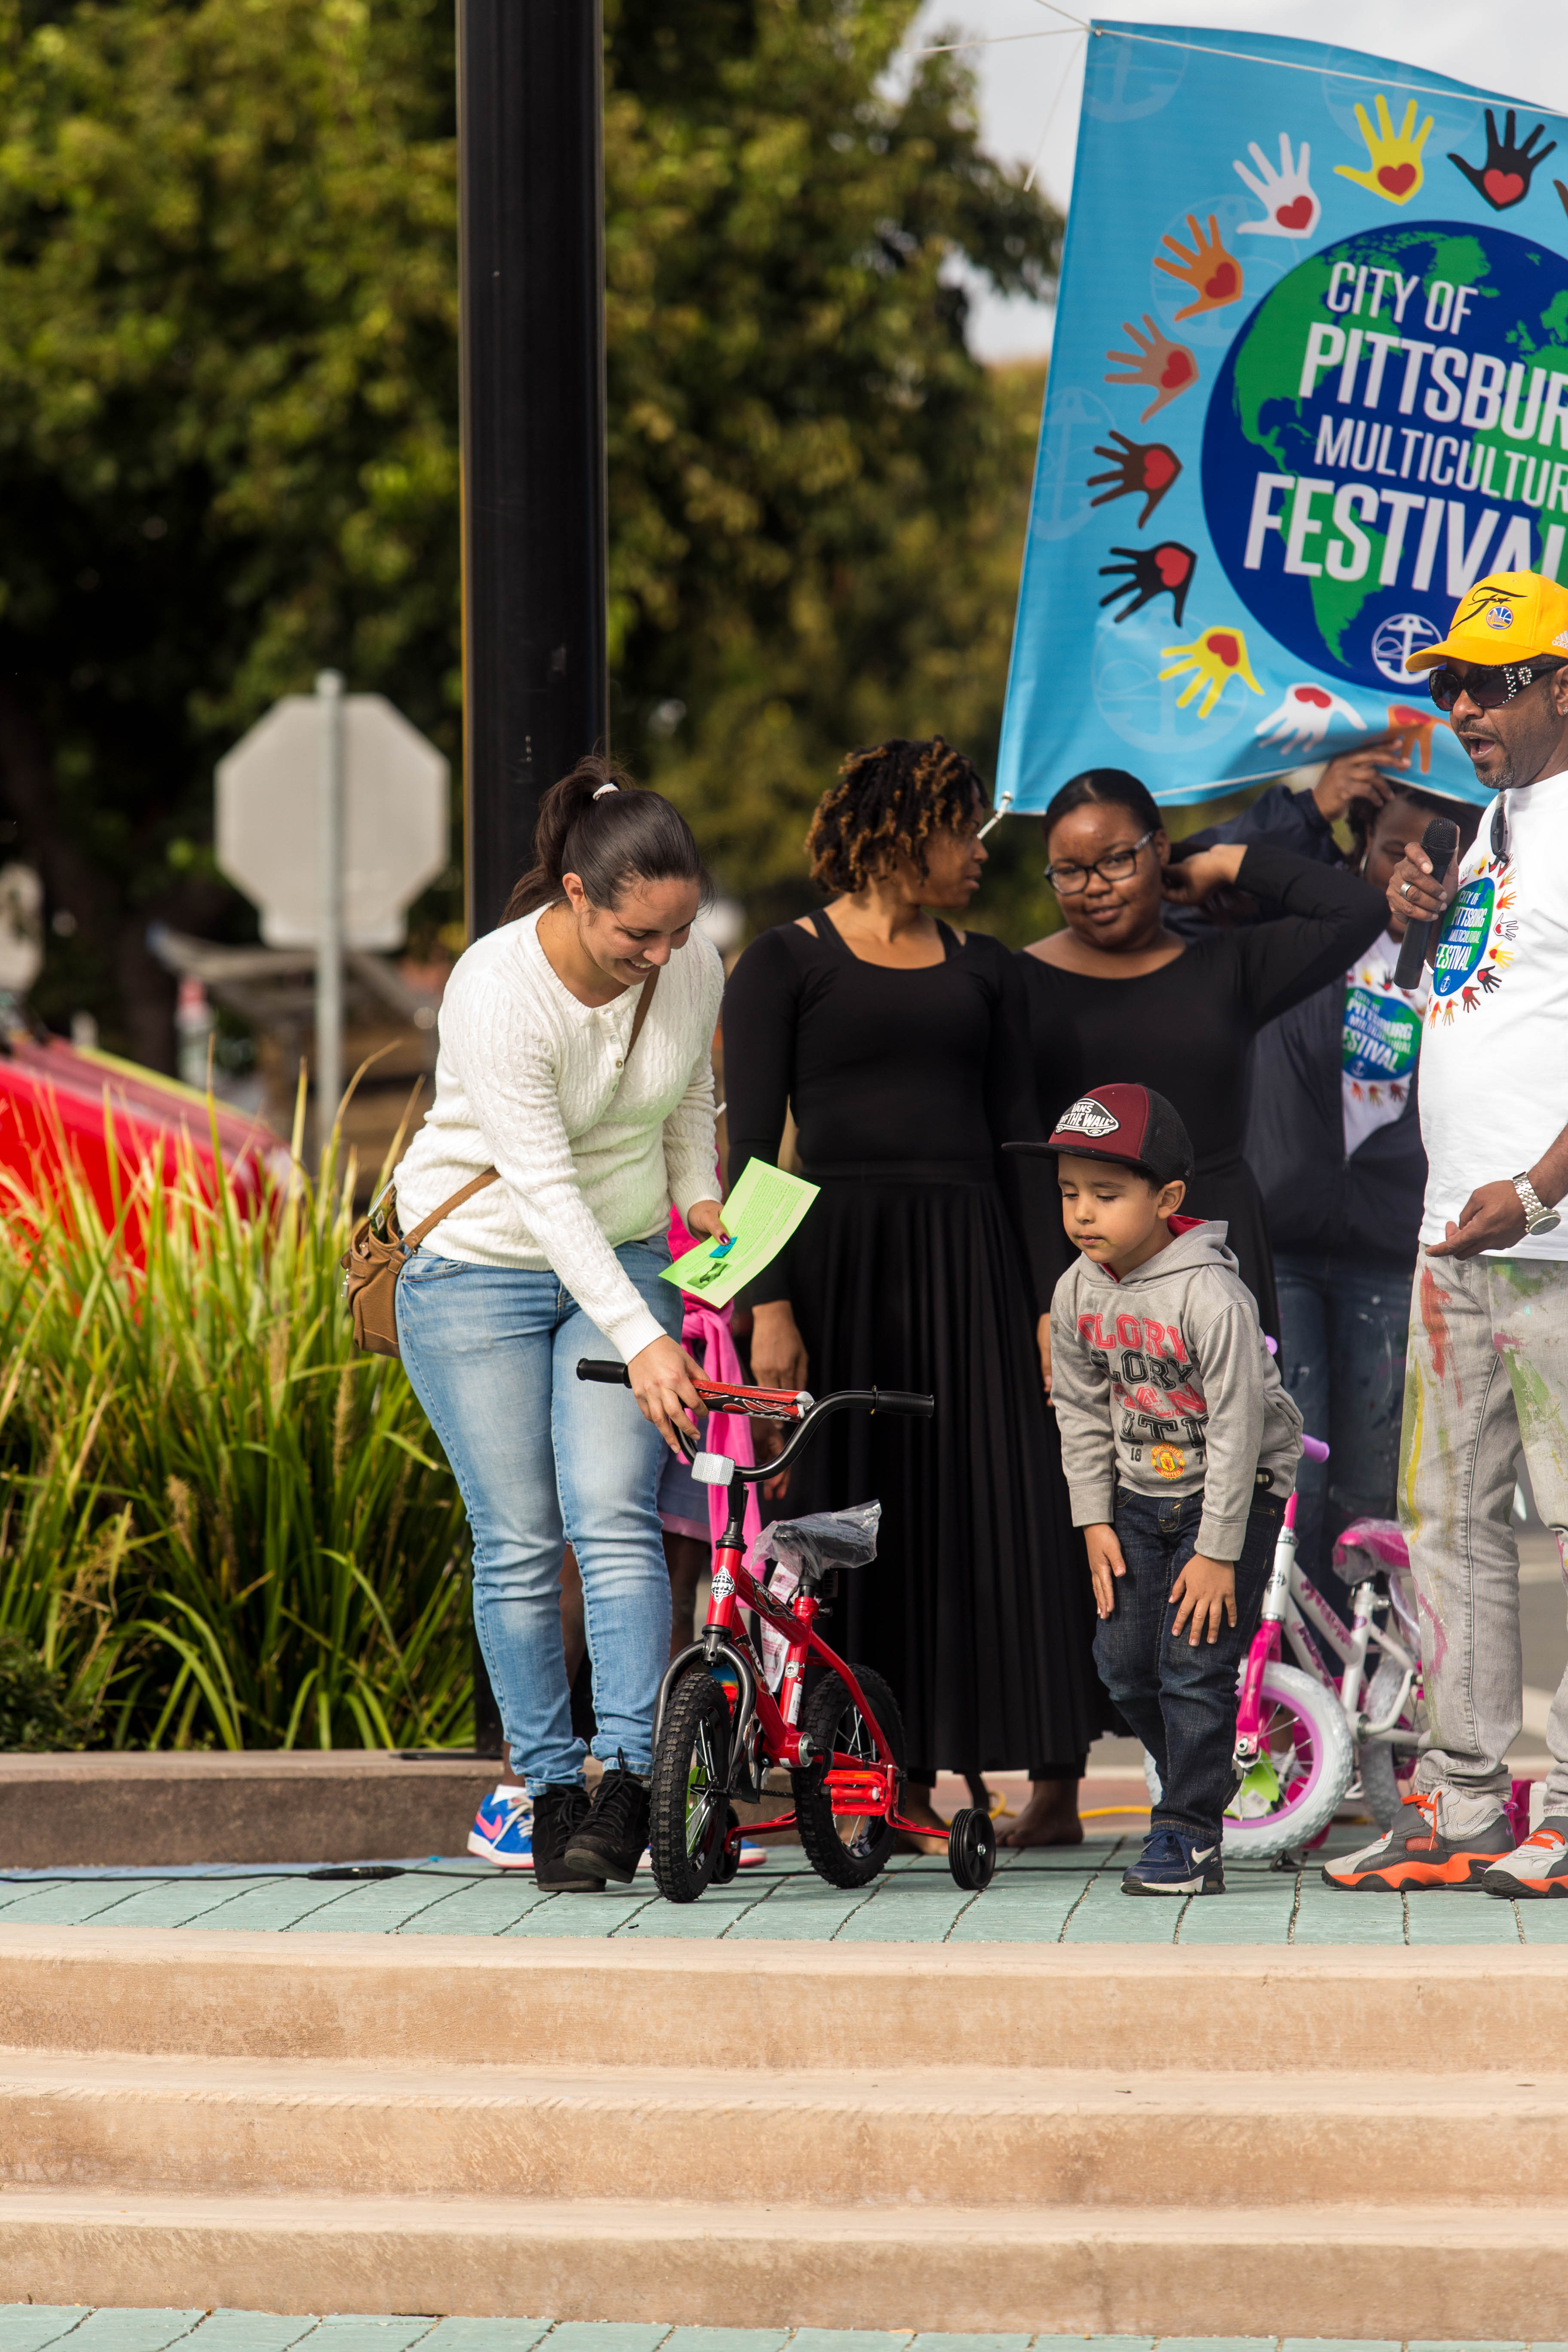 CITY_PITTSBURG_MULTICULTURAL_OCTOBER_2016 (735)